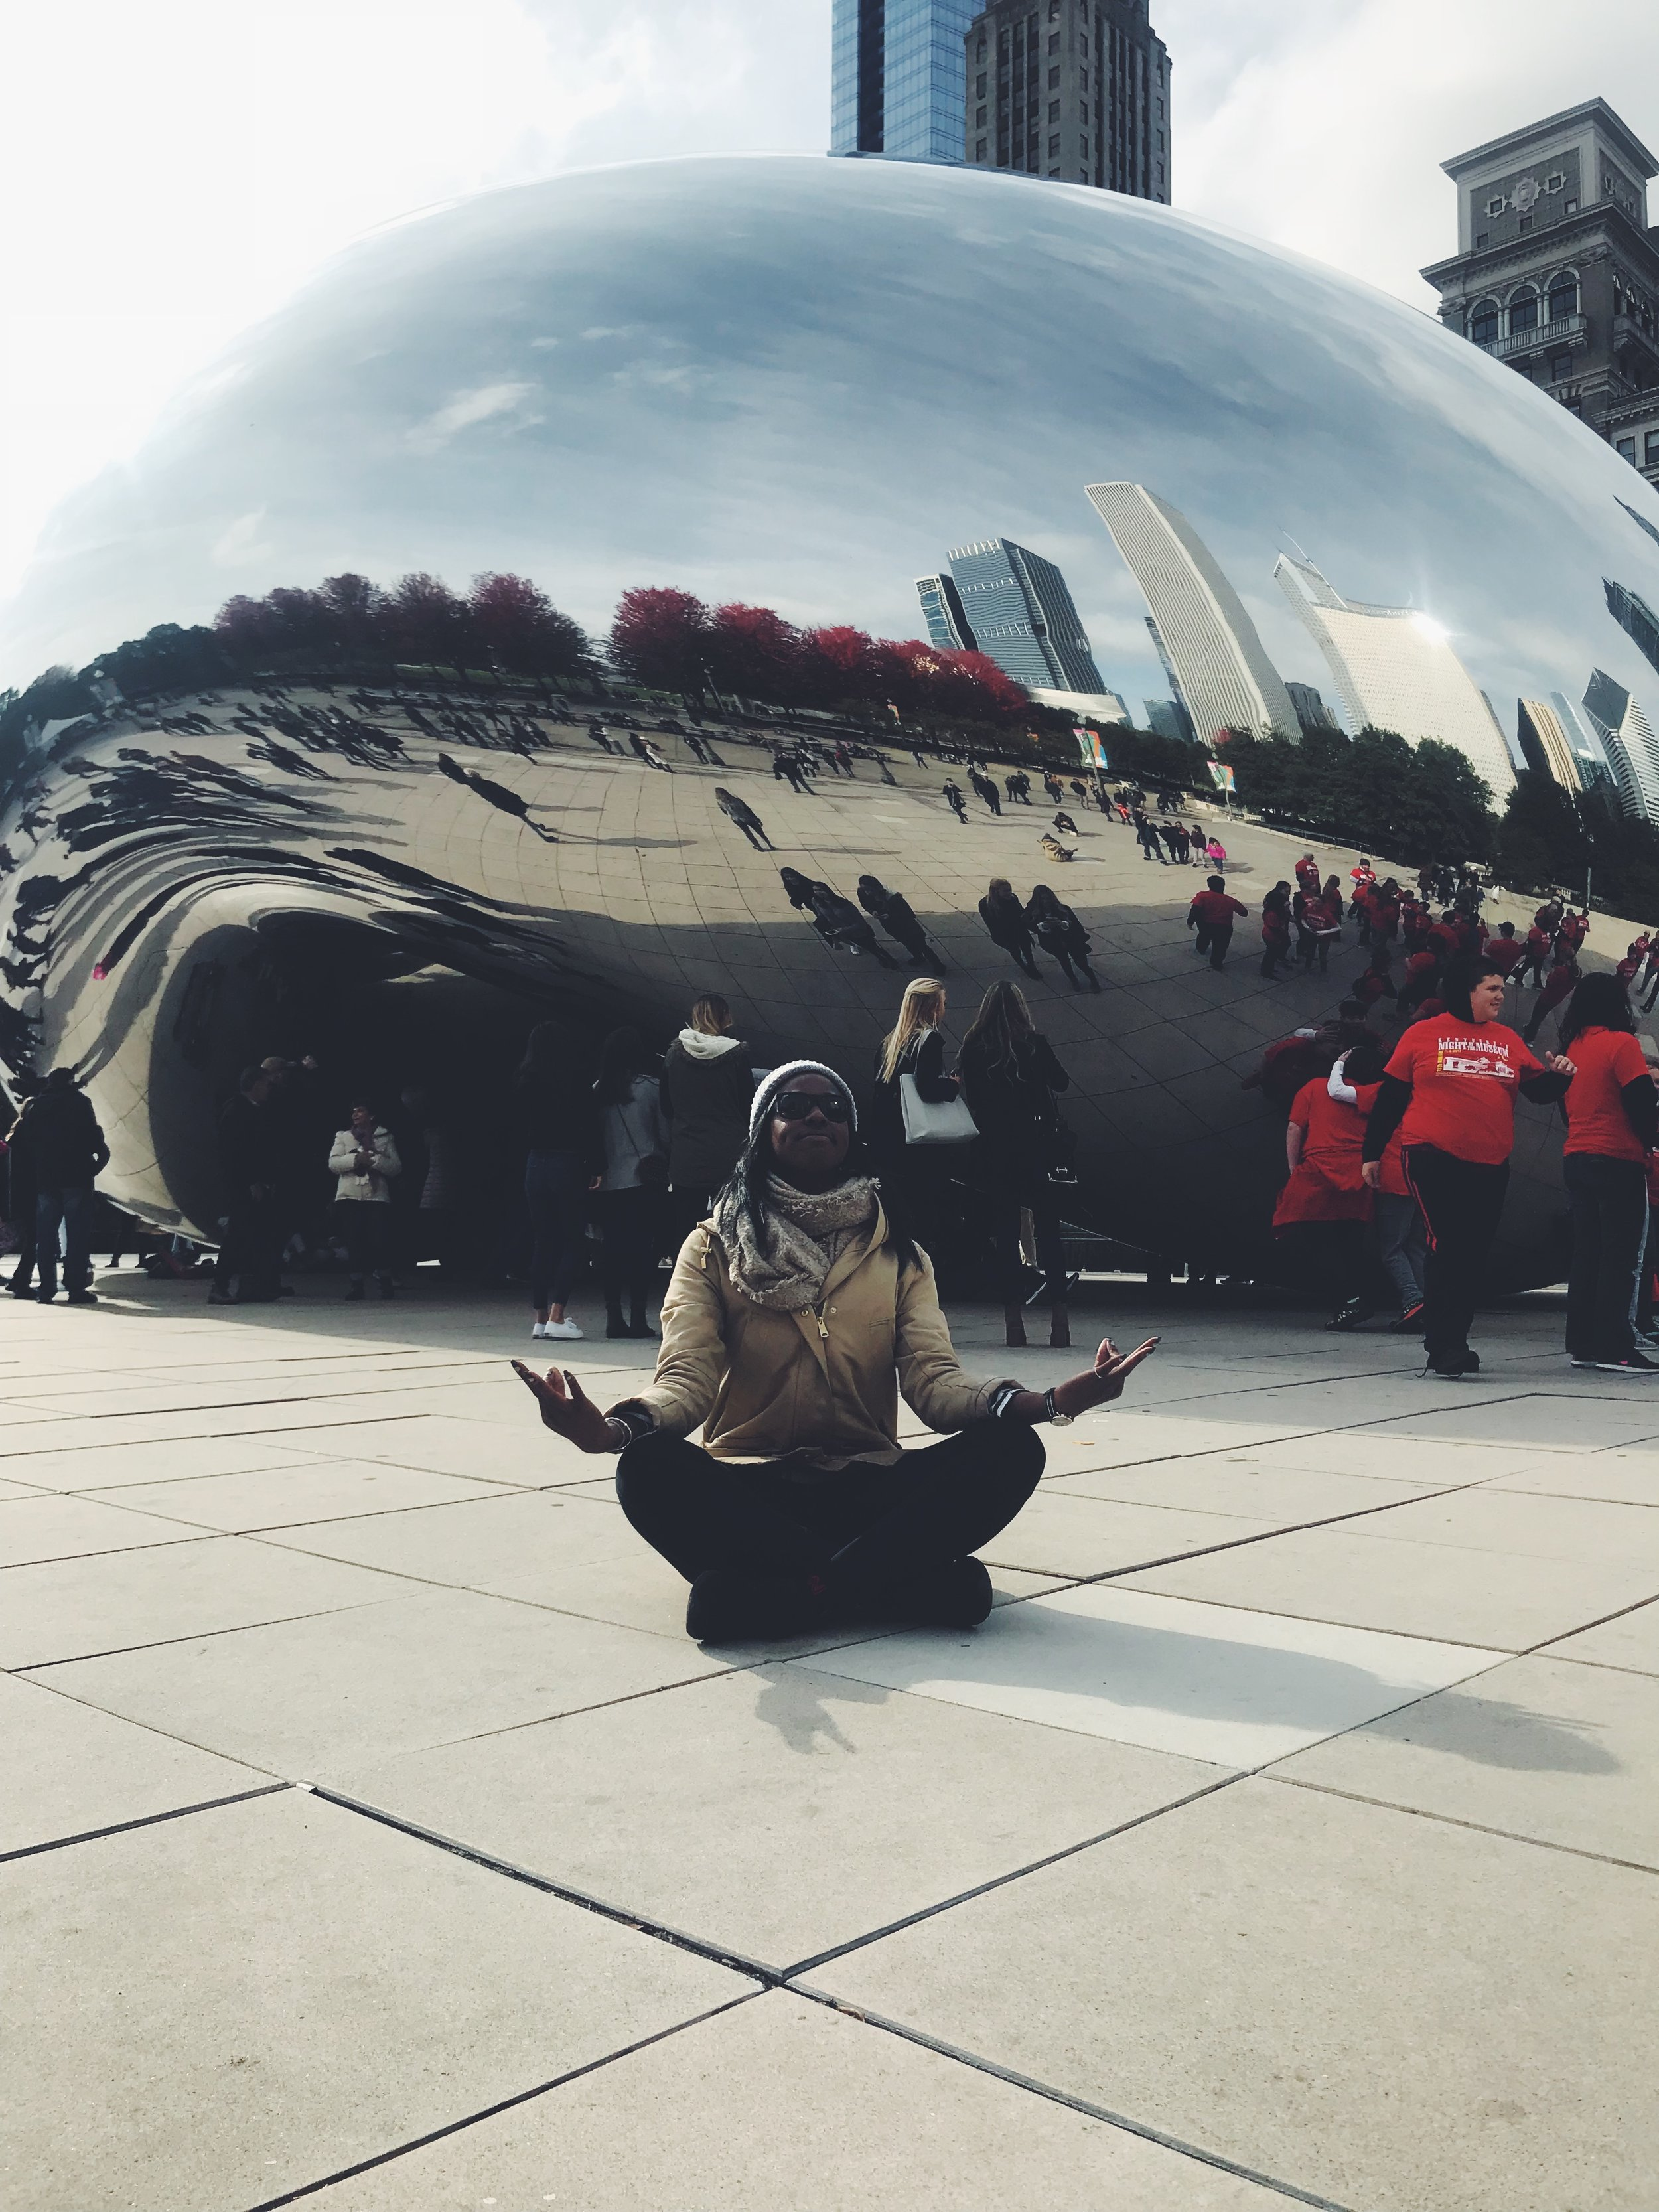 A moment of zen in Chicago